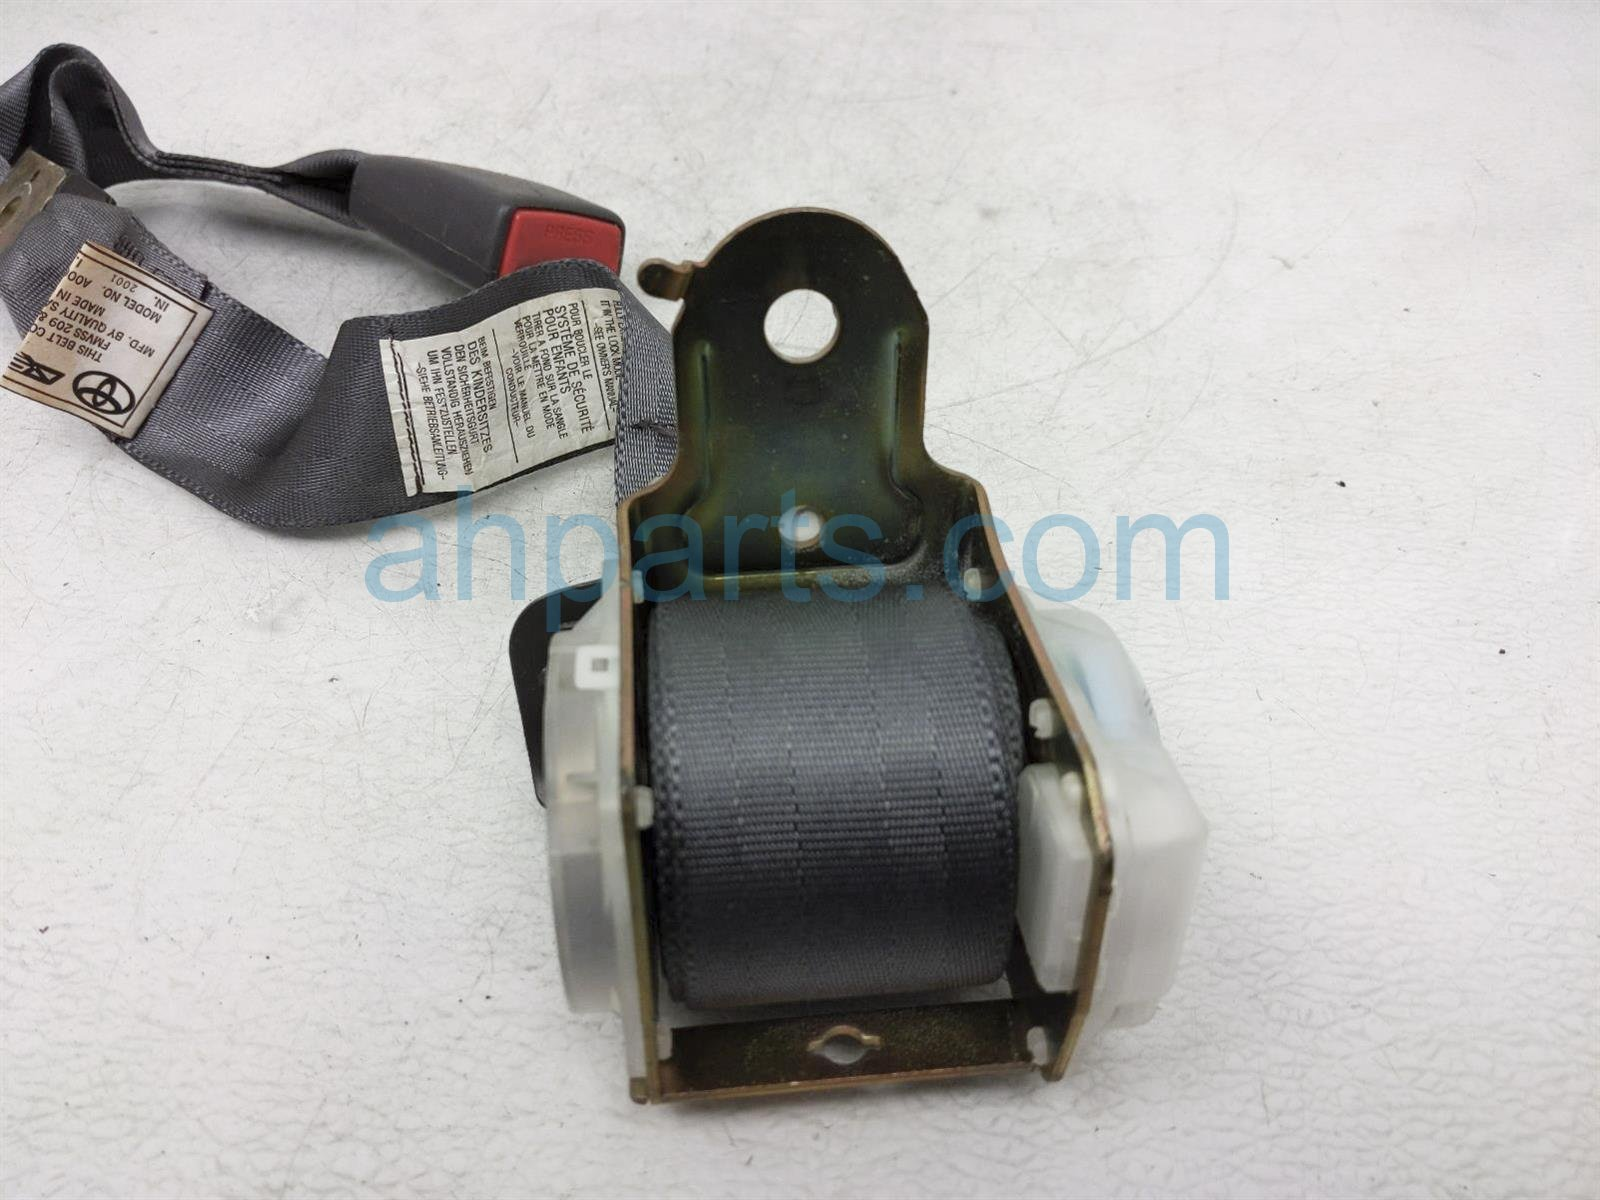 2001 Toyota Camry Rear 2nd Row Mid Seat Belt   Grey 73480 AA040 B0 Replacement